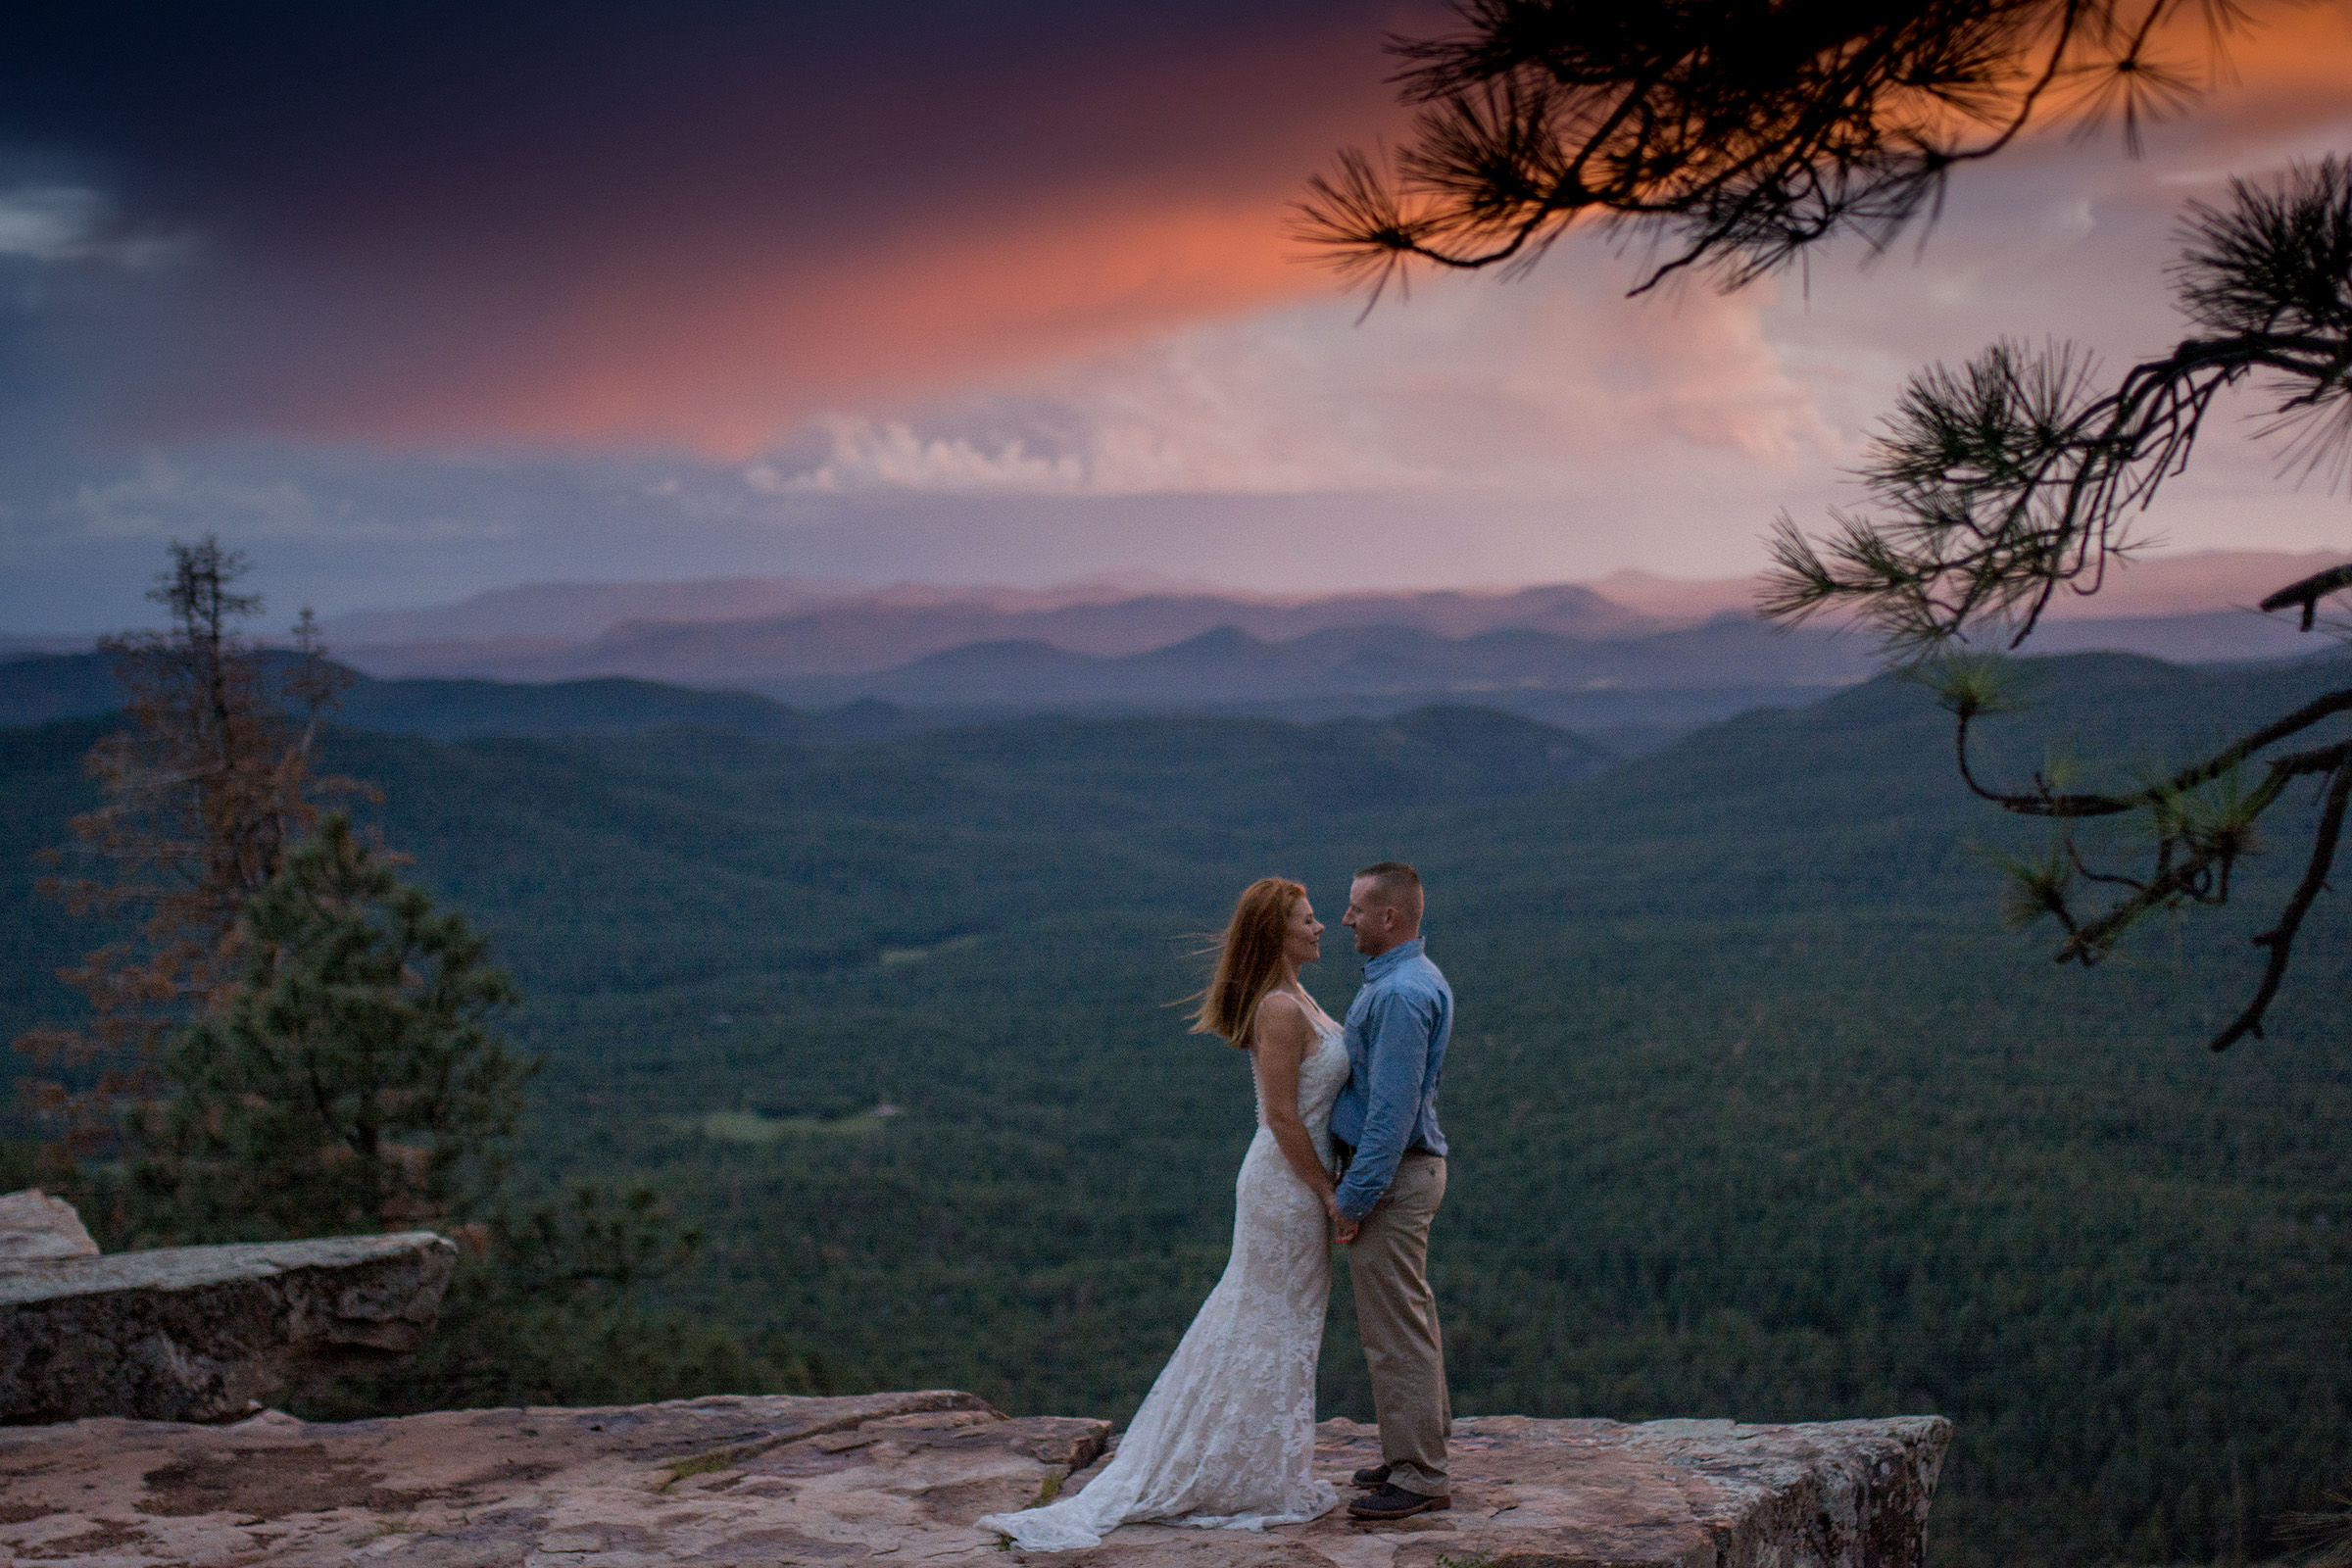 Thinking of eloping or have more questions about elopements? Connect with me! -